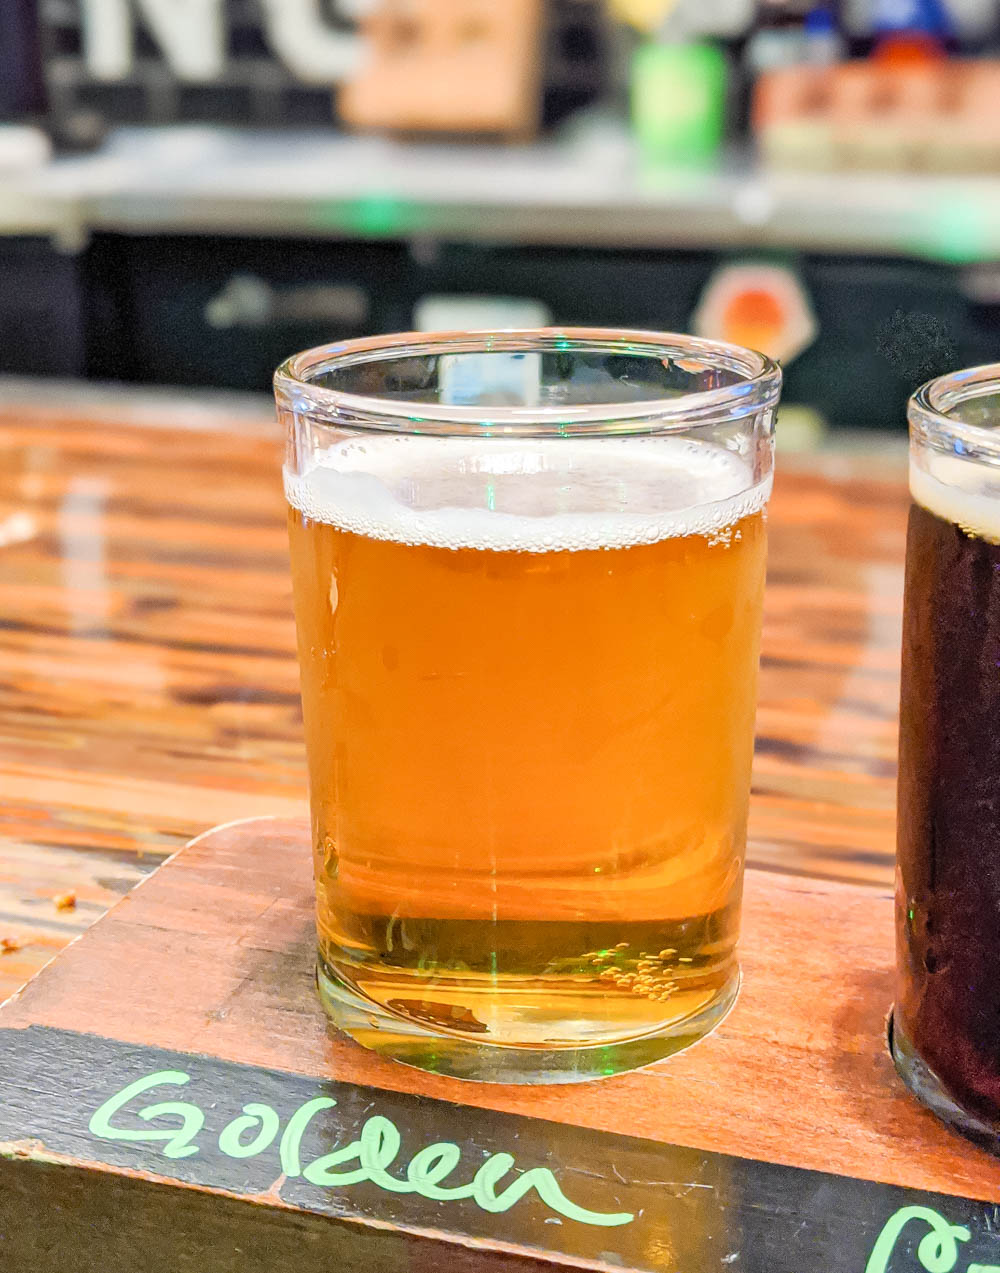 golden beer | Awesome breweries in palm beach county, florida | craft beer and cider in west palm beach